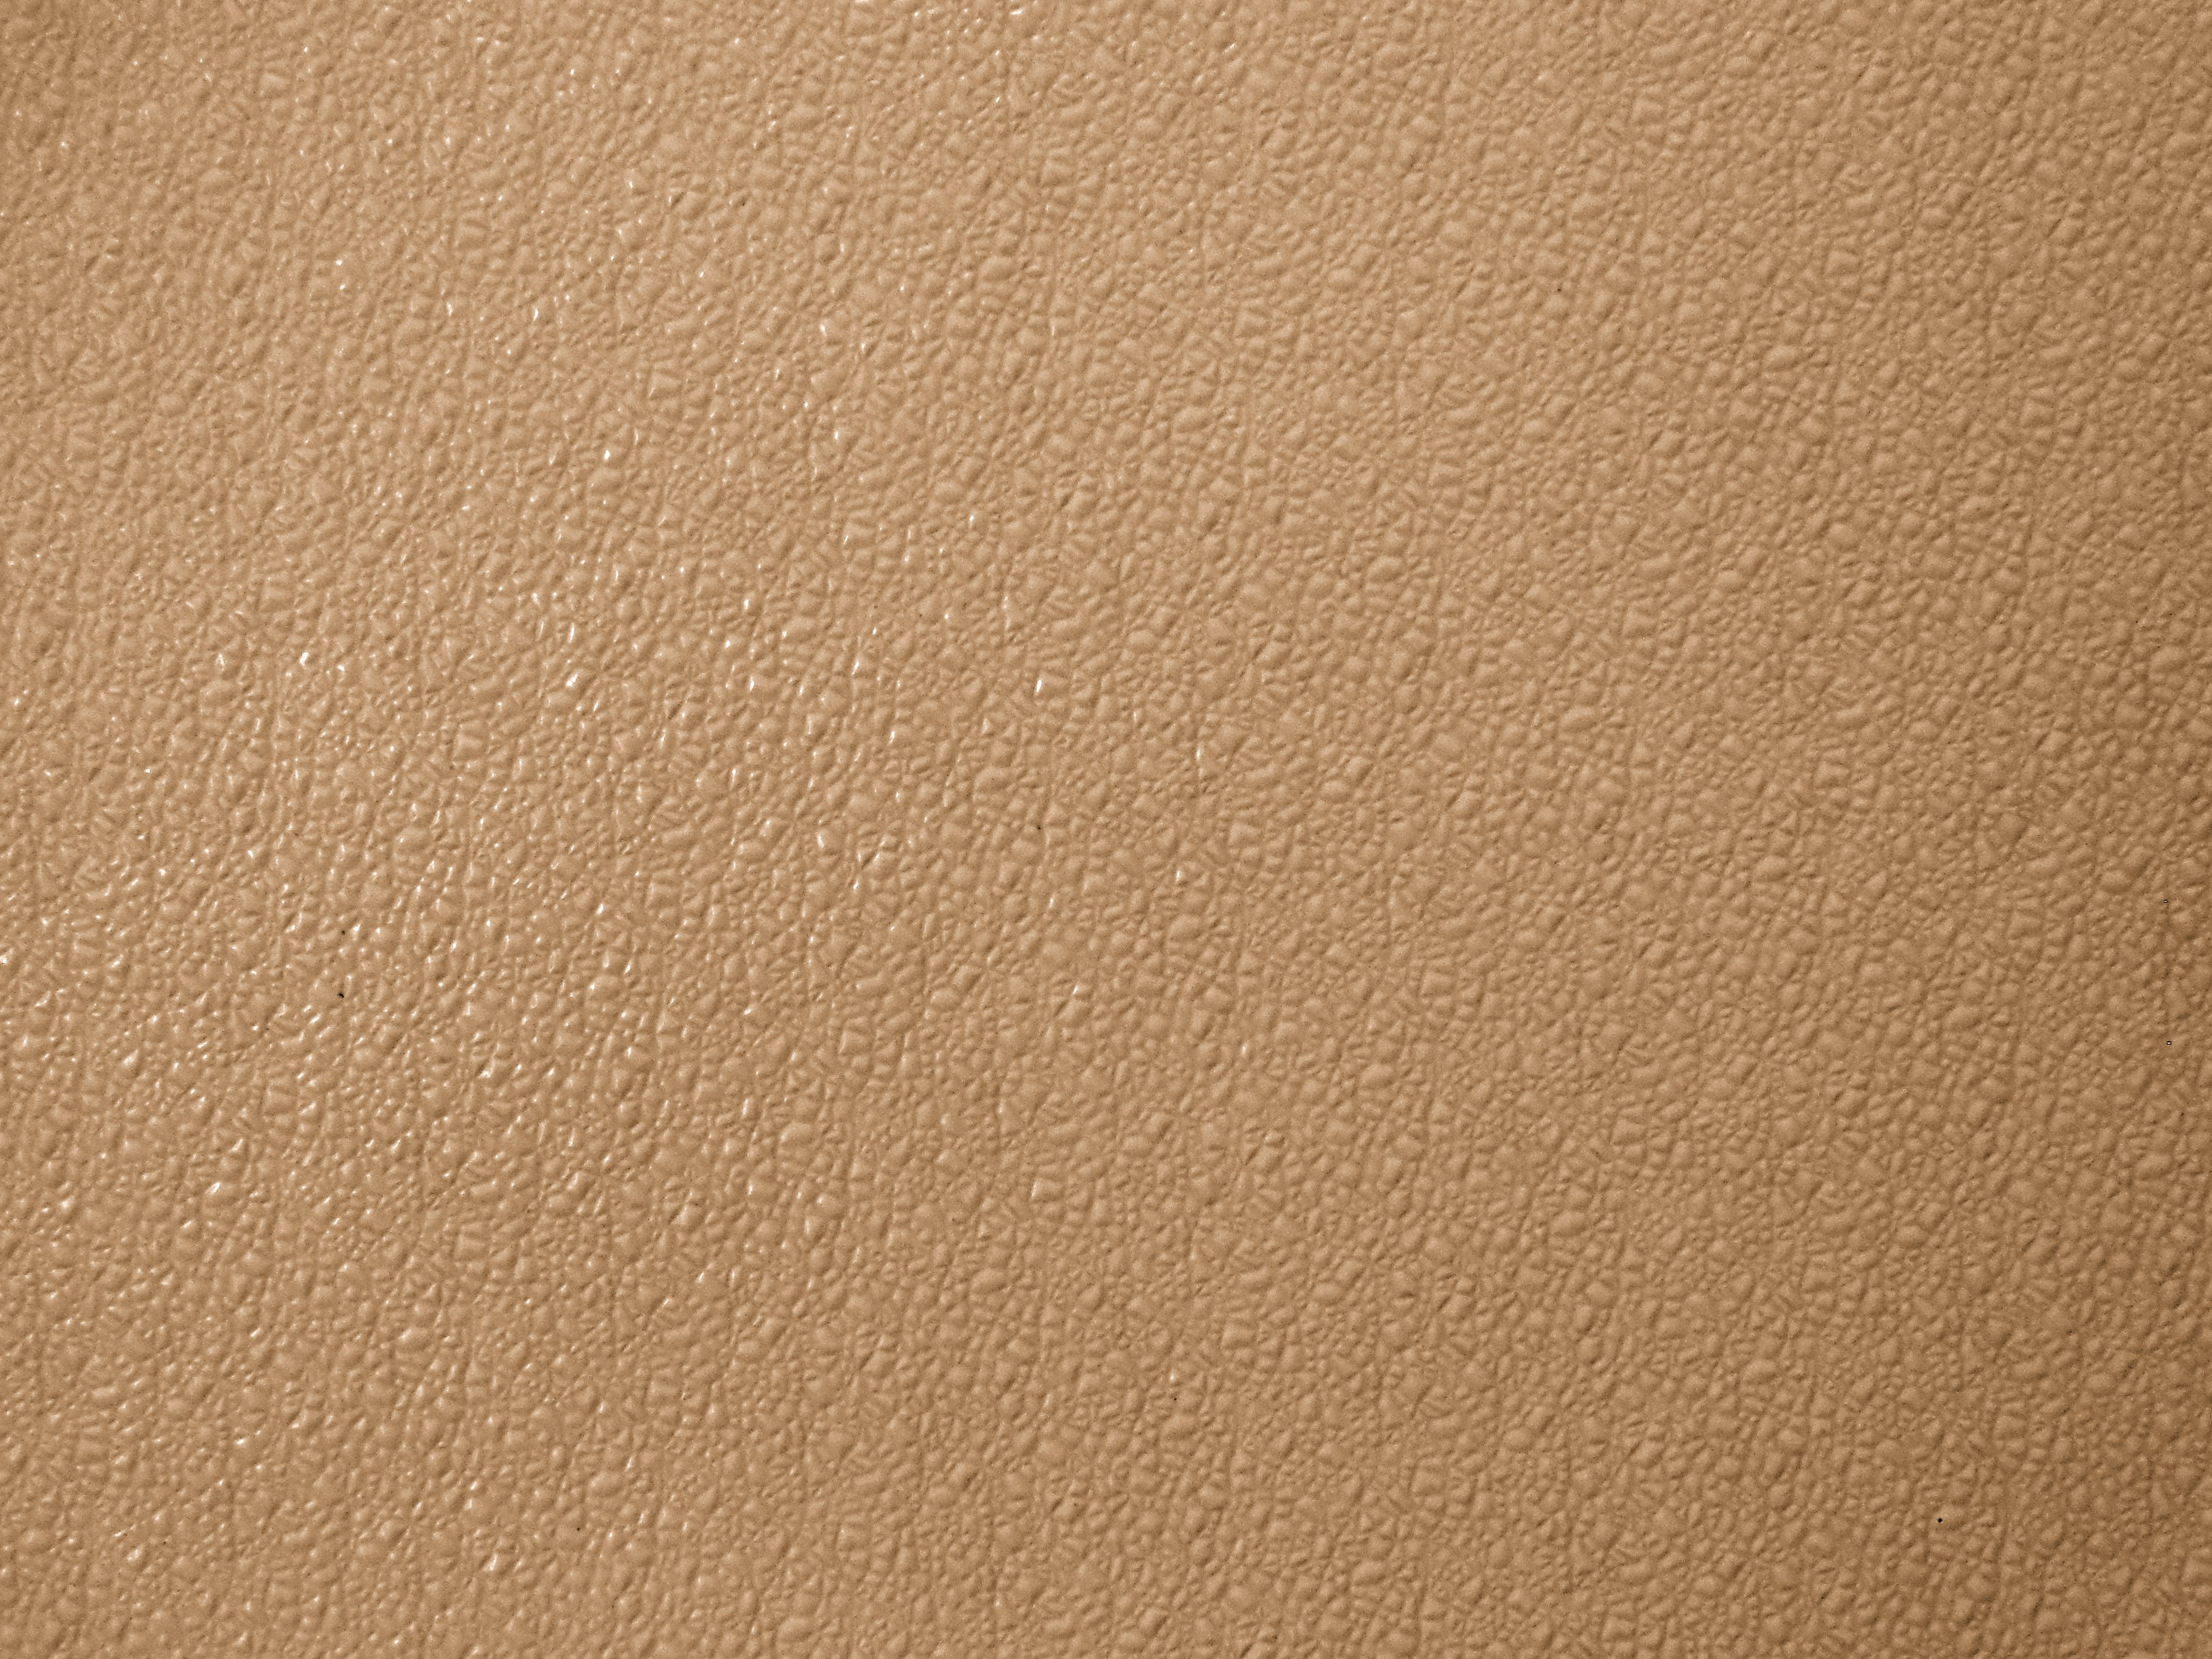 Bumpy Tan Plastic Texture Picture | Free Photograph ...